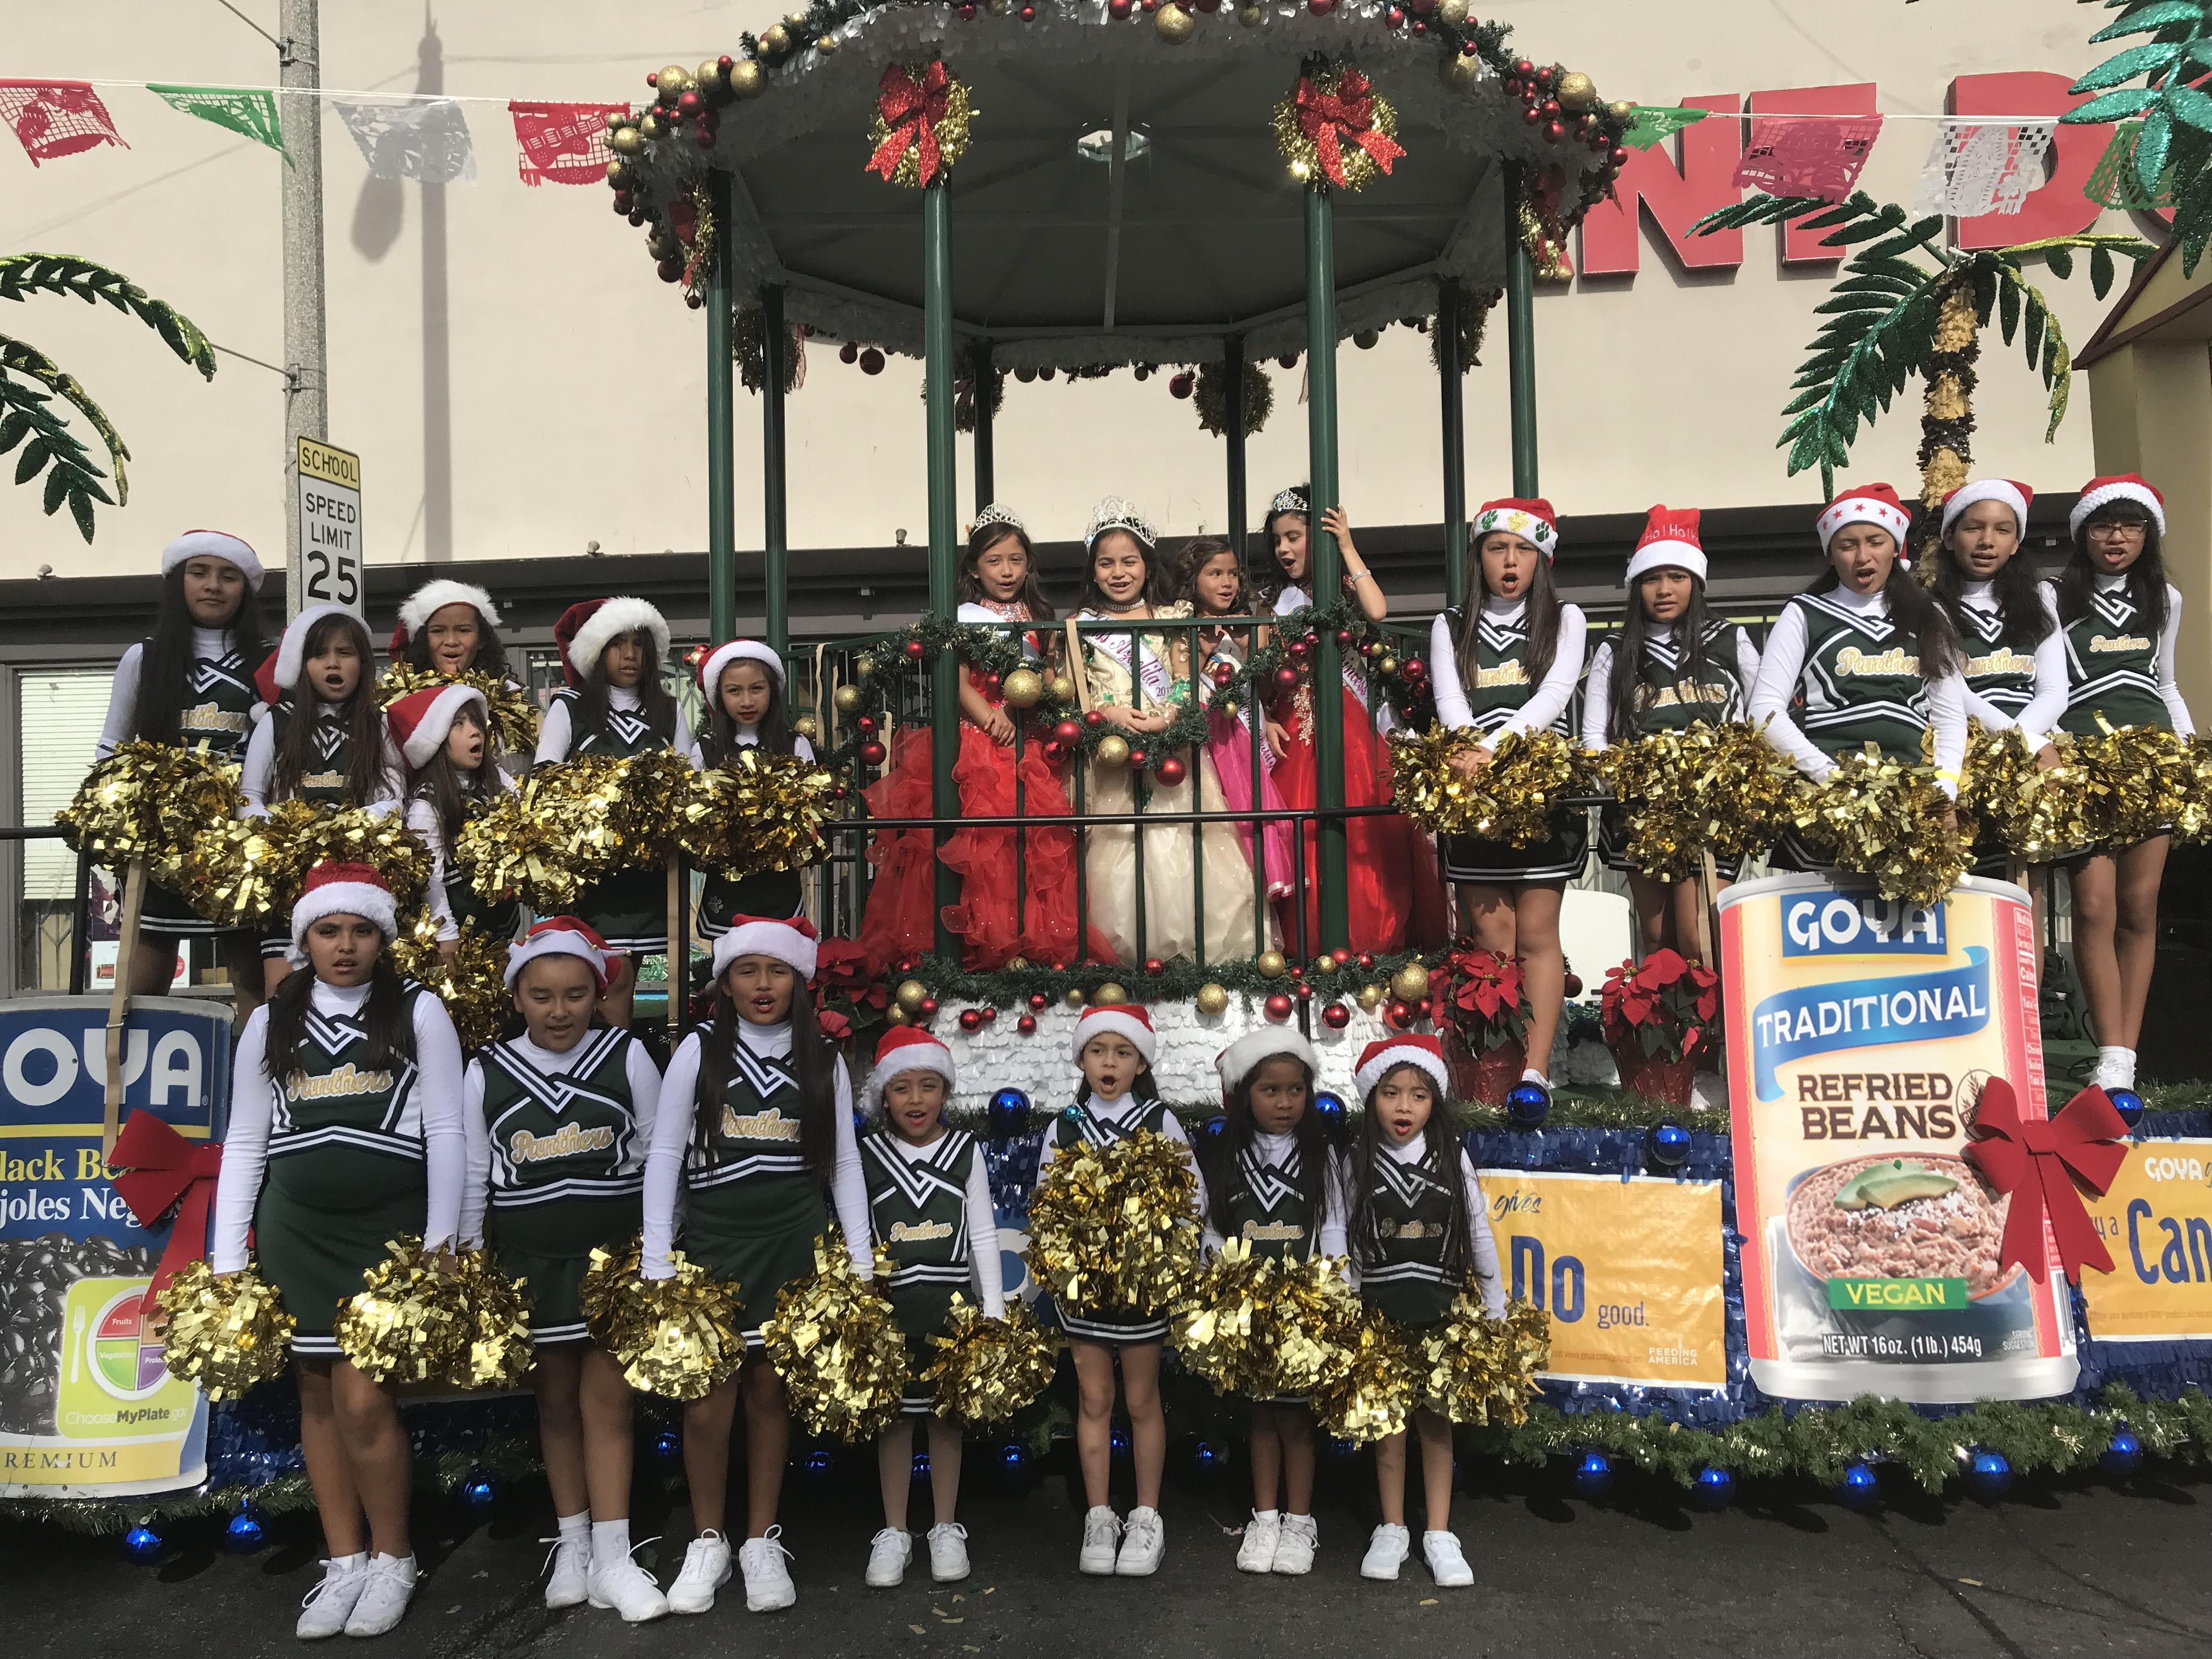 Bringing in the holidays with the Saybrook Panthers Cheer